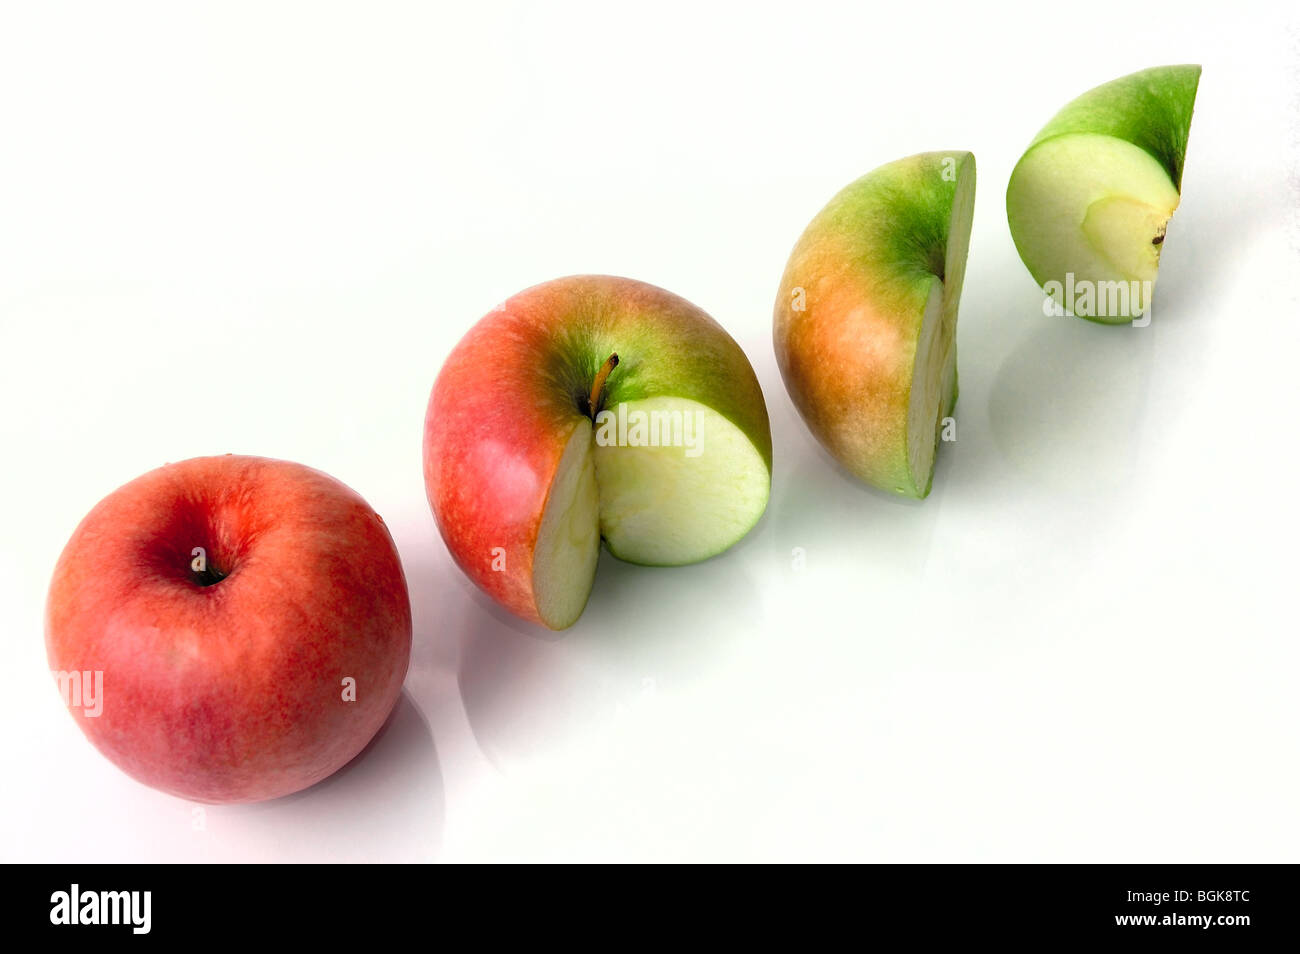 Four apples from red and whole to quater of green one isolated on white background, percentage concept, profit or - Stock Image